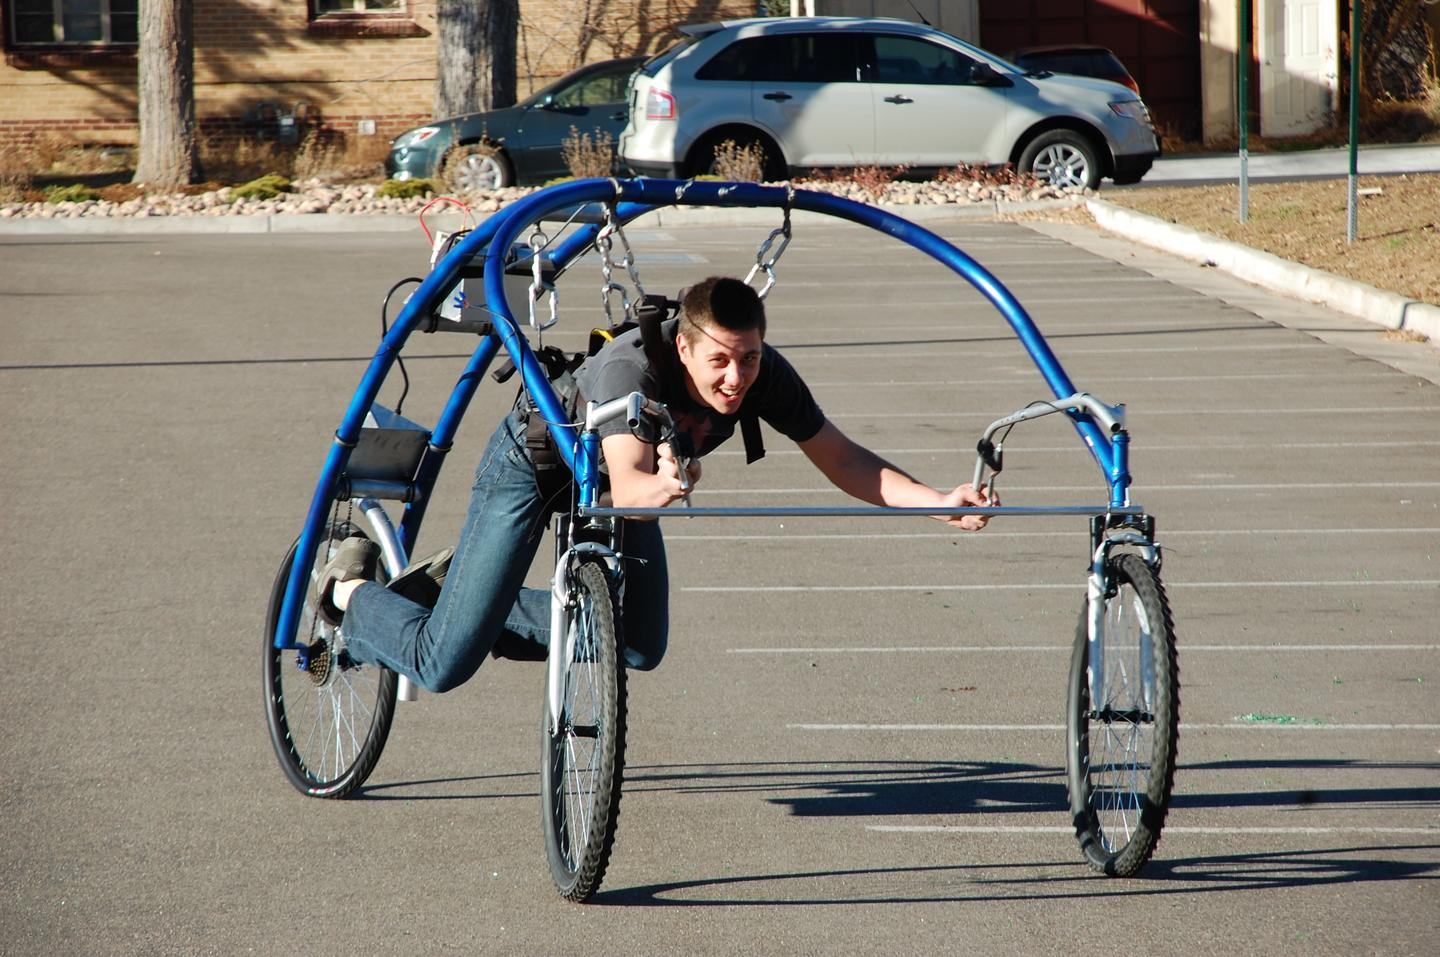 The E-Streetflyer is powered by a 750 W electric motor